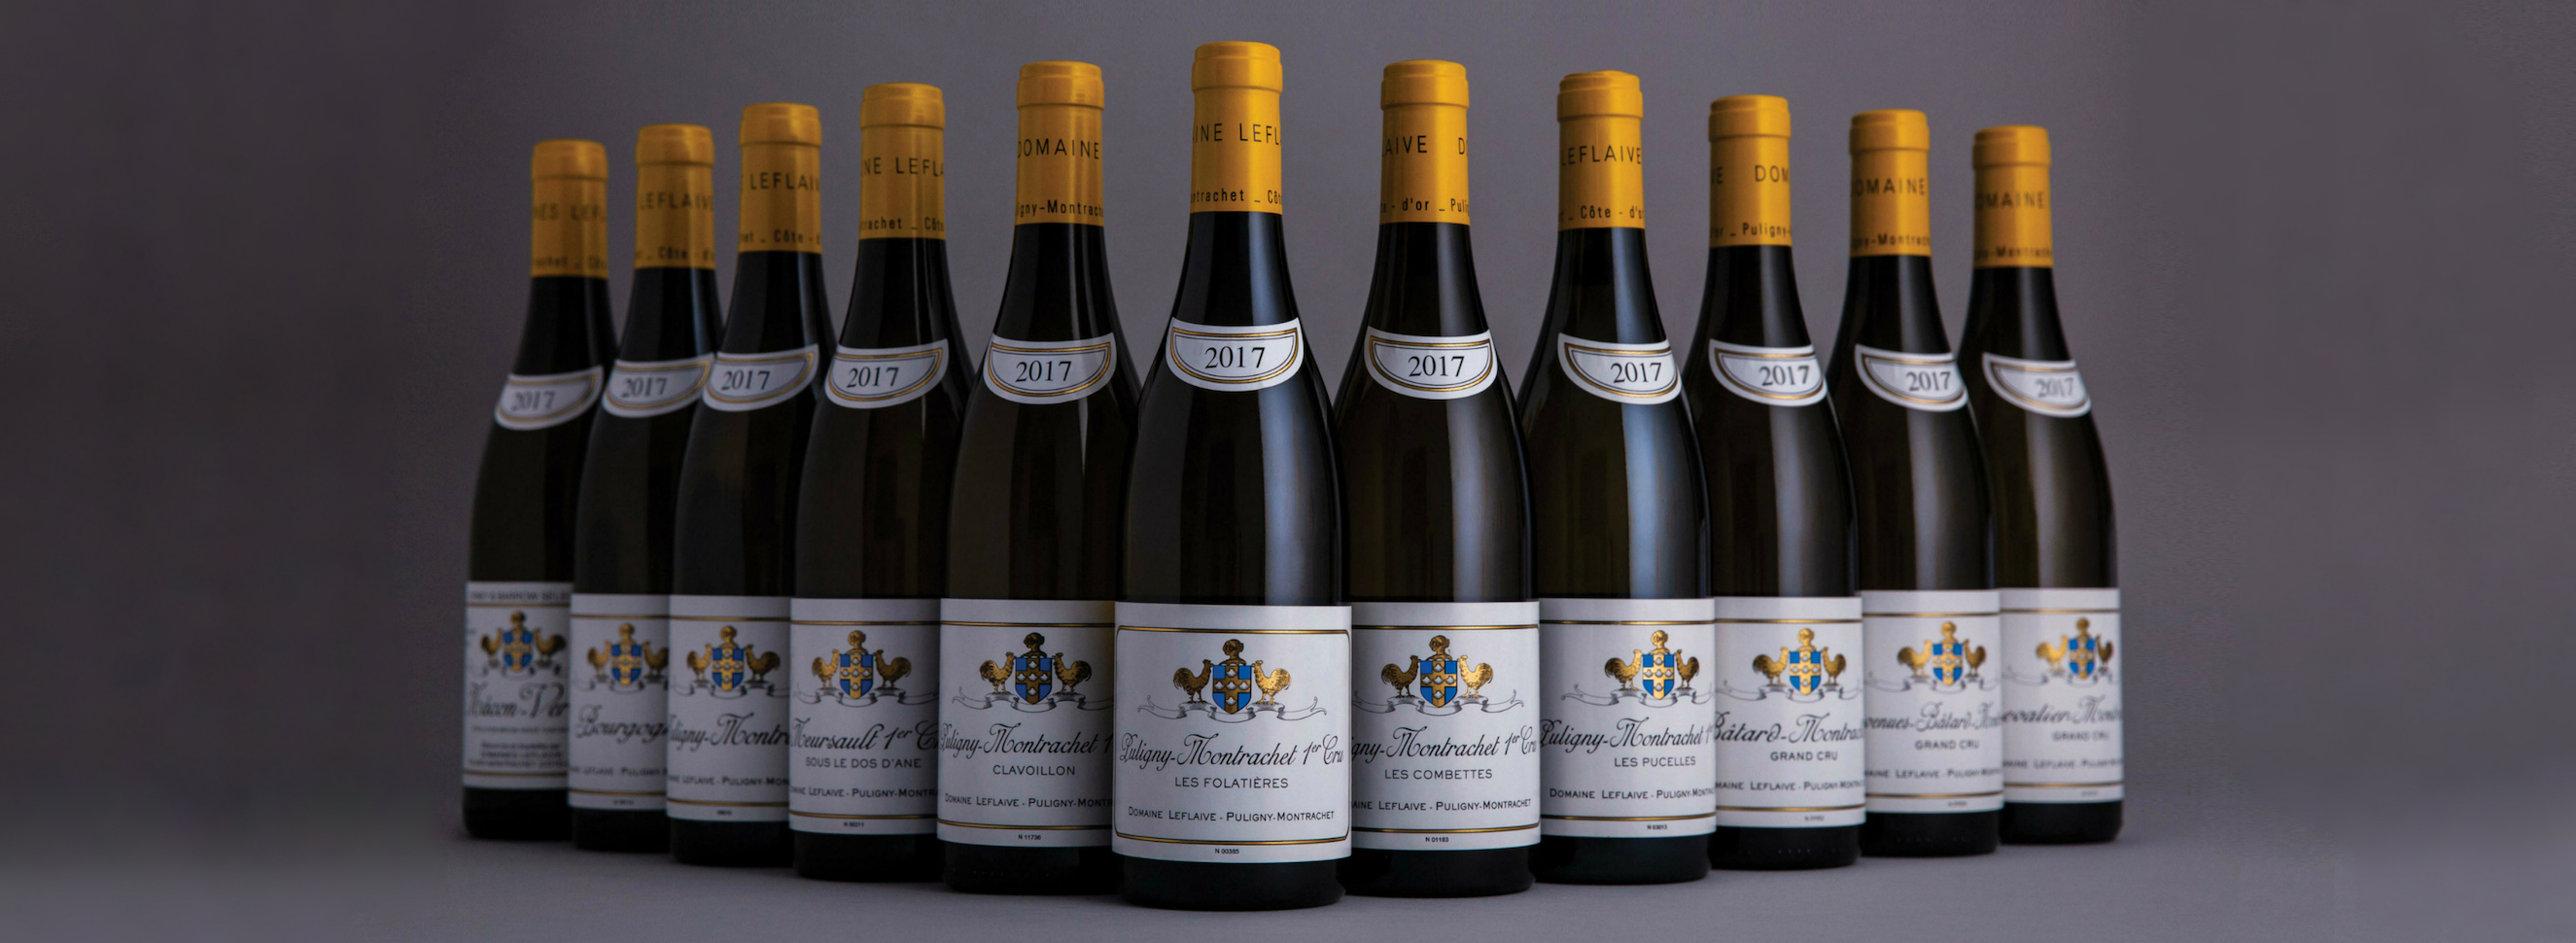 New Release: Domaine Leflaive 2017